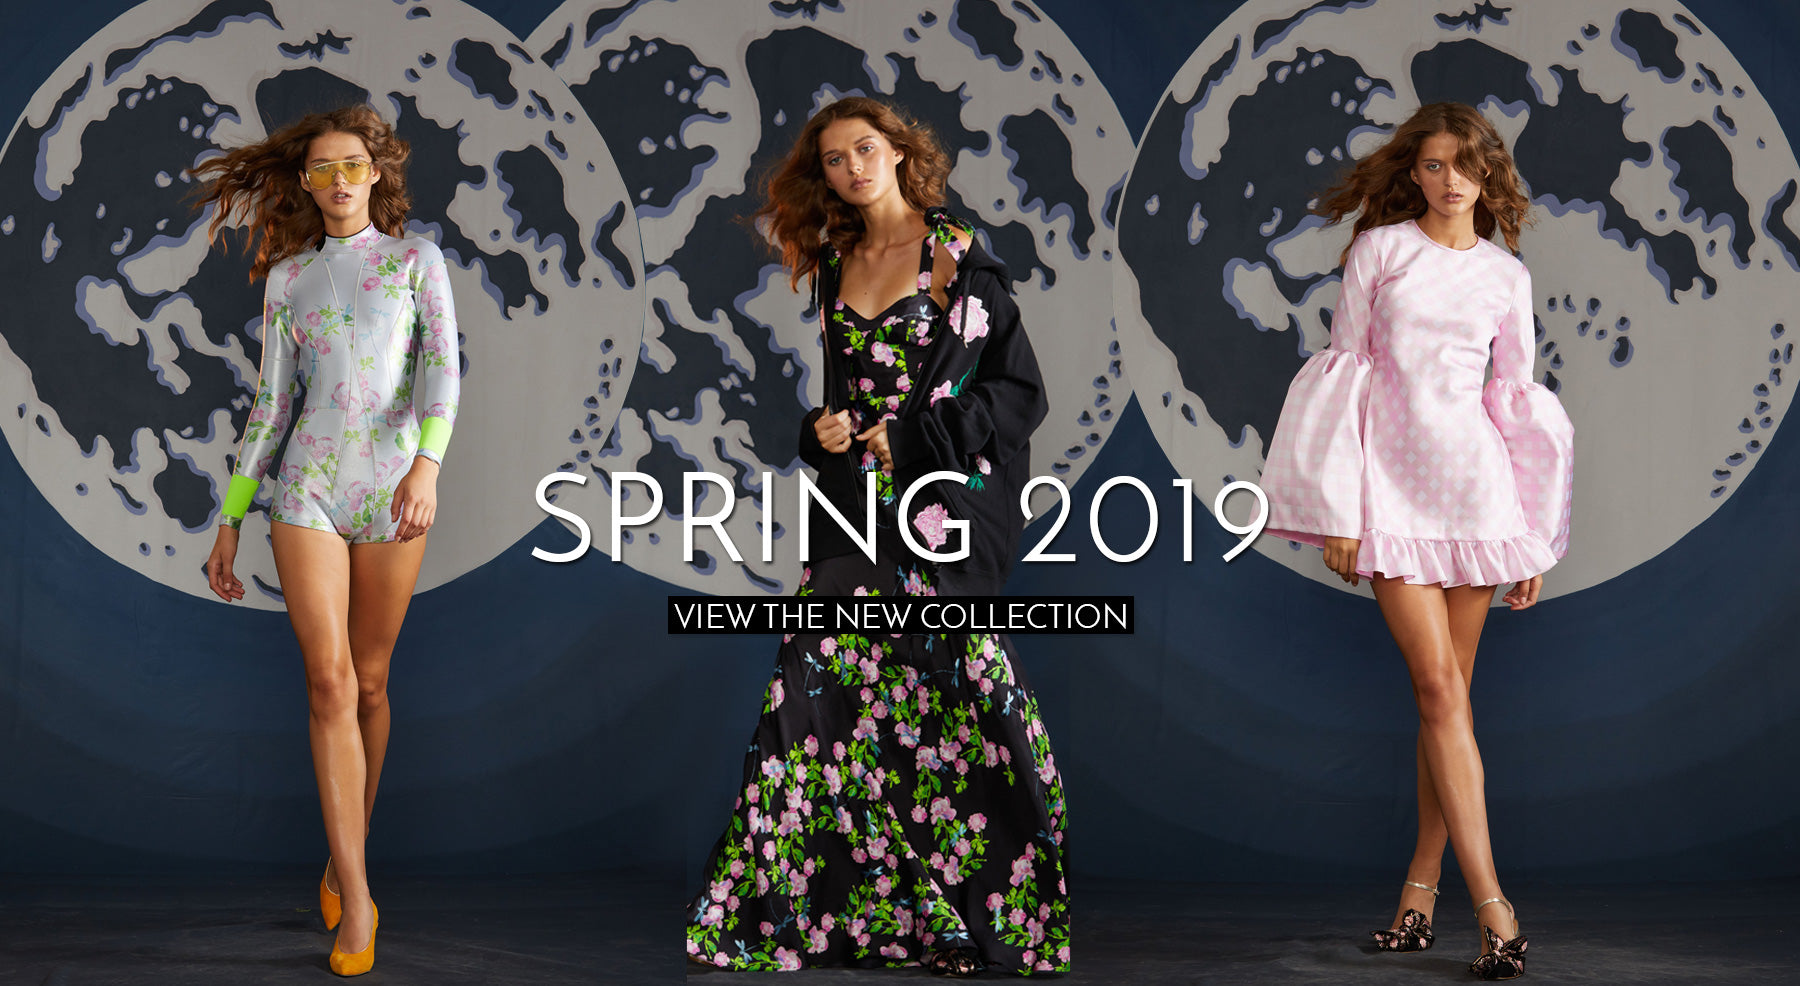 Spring 2019 look book images of a floral dress, wetsuit, and gingham baby doll dress. Text Overlay: Spring 2019 View the new collection.